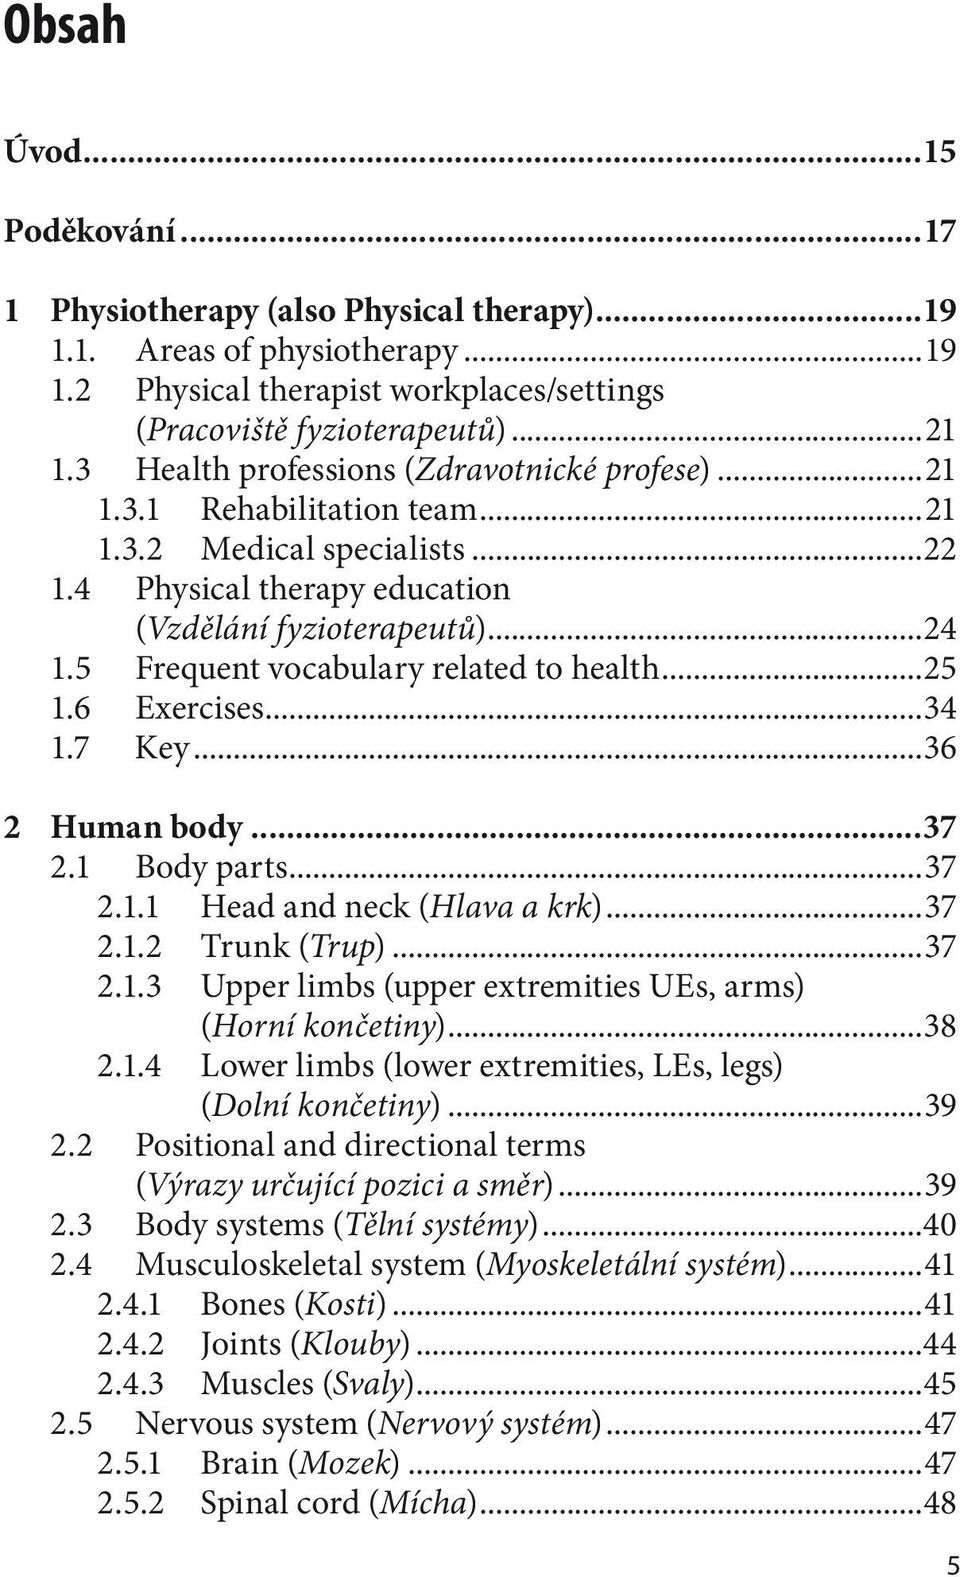 5 Frequent vocabulary related to health...25 1.6 Exercises...34 1.7 Key...36 2 Human body...37 2.1 Body parts...37 2.1.1 Head and neck (Hlava a krk)...37 2.1.2 Trunk (Trup)...37 2.1.3 Upper limbs (upper extremities UEs, arms) (Horní končetiny).